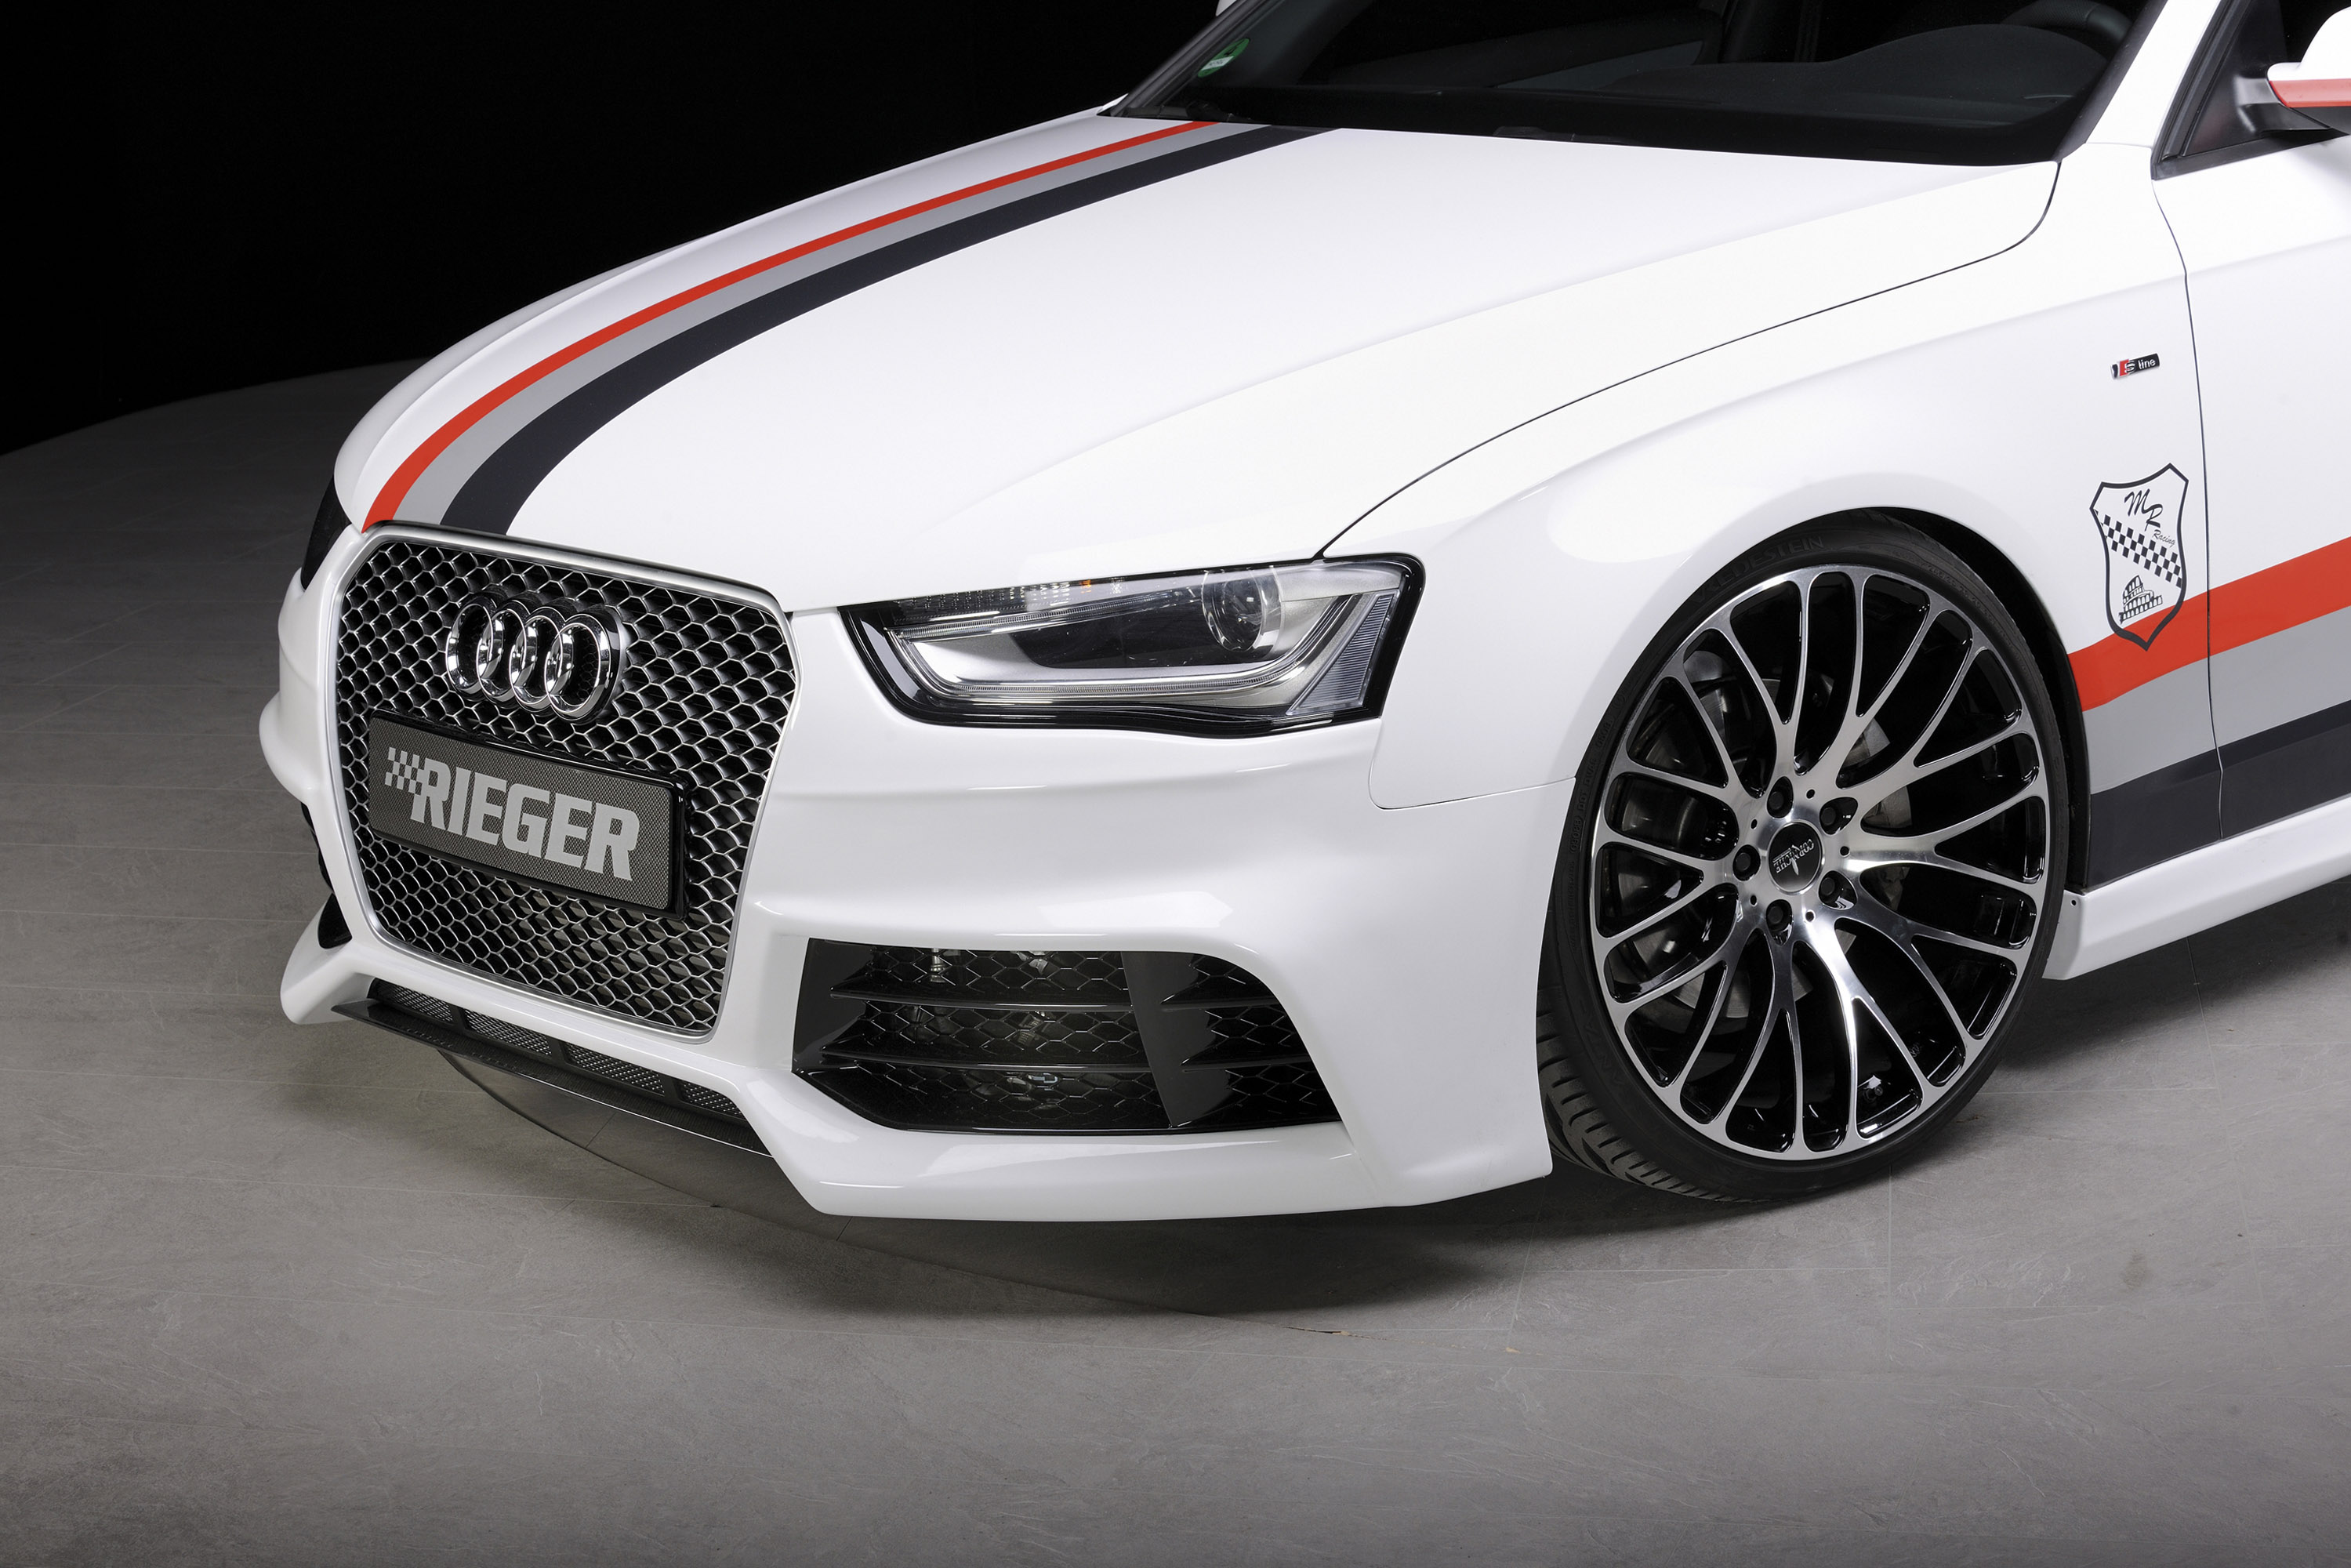 2013 audi a4 b8 facelift tuned by rieger. Black Bedroom Furniture Sets. Home Design Ideas